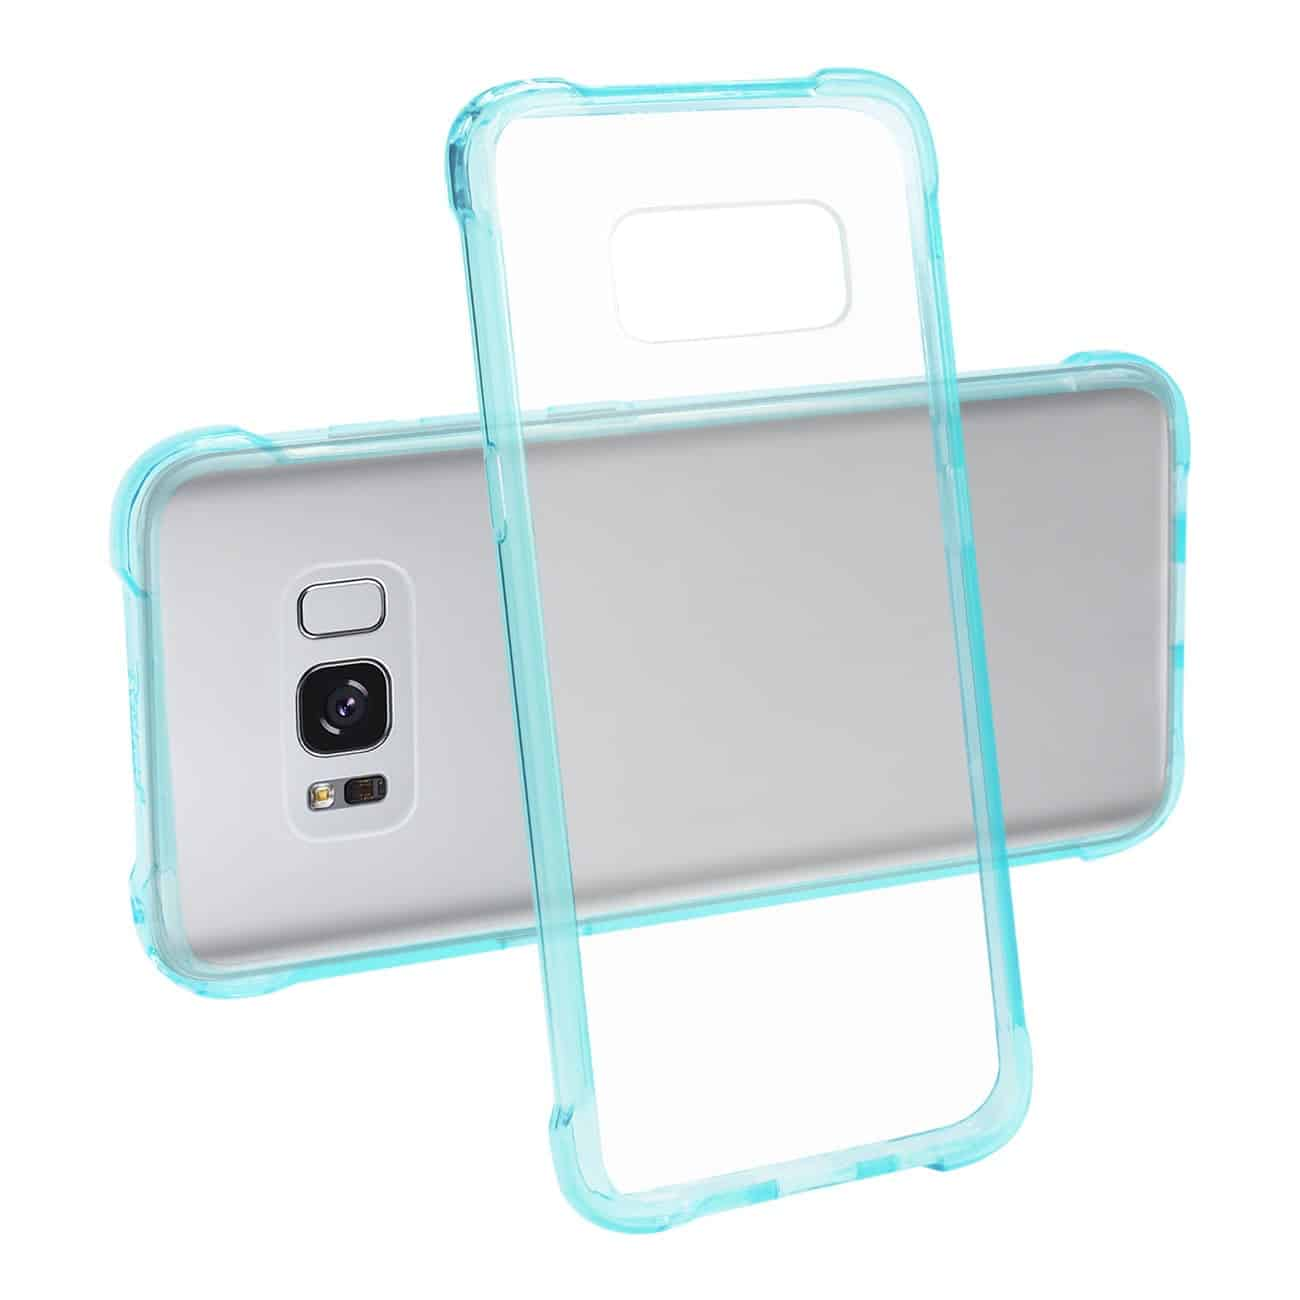 SAMSUNG GALAXY S8 CLEAR BUMPER CASE WITH AIR CUSHION PROTECTION IN CLEAR NAVY